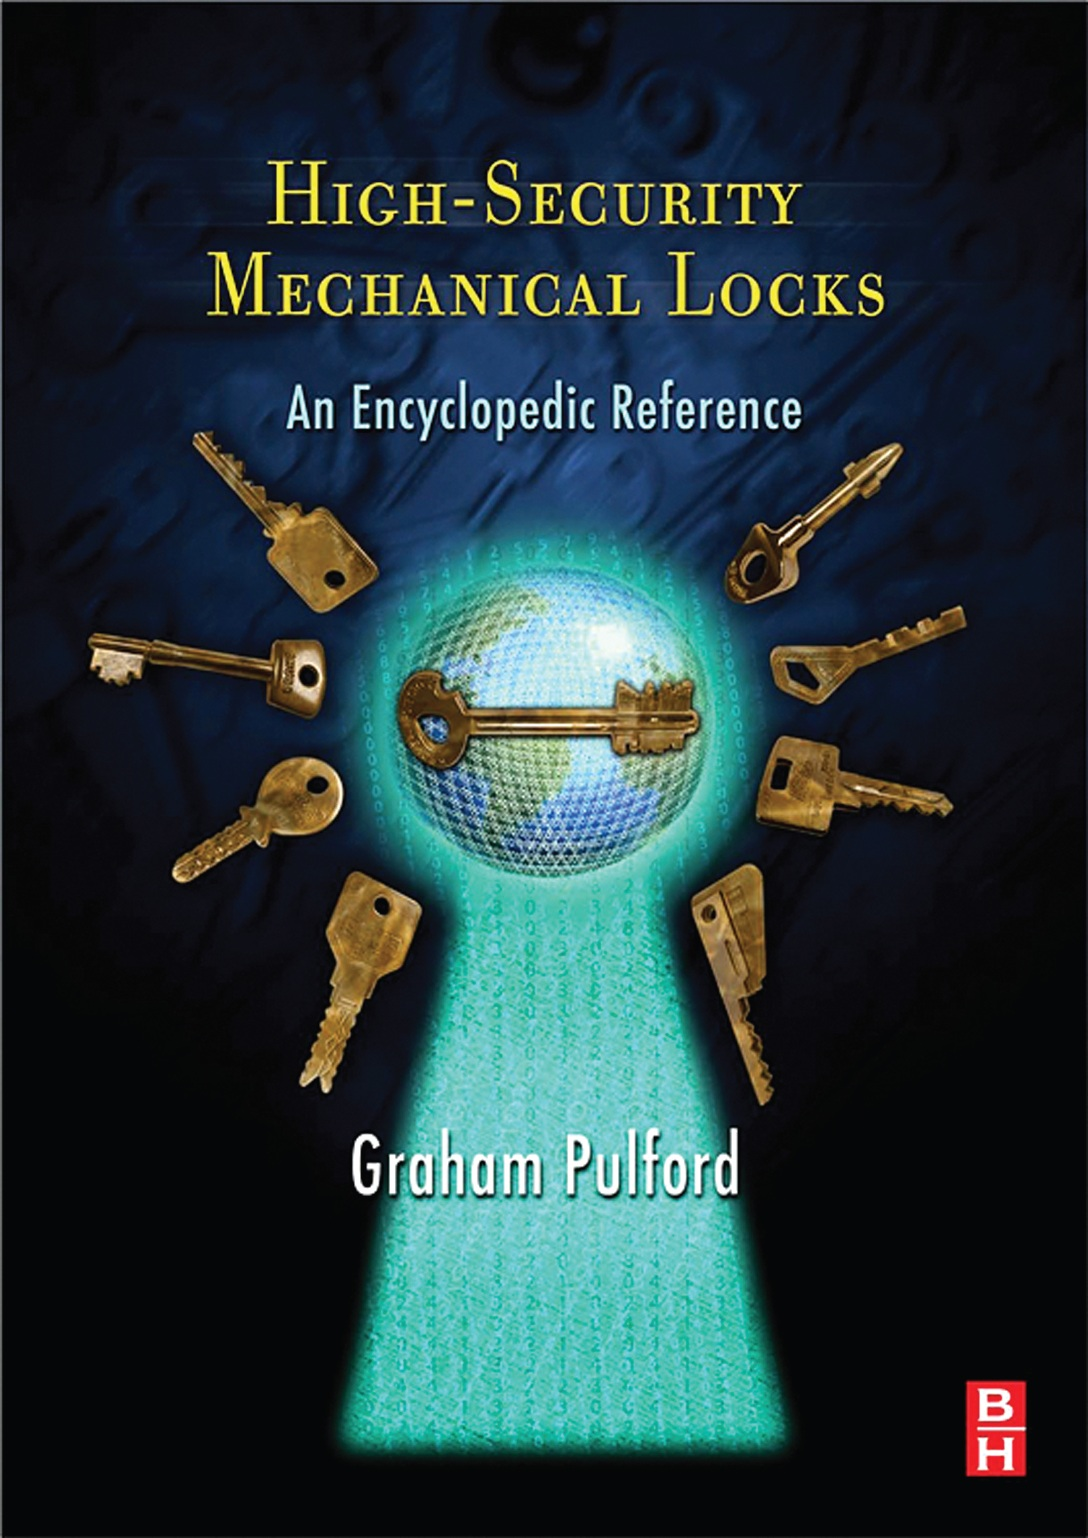 high-security mechanical locks an encyclopedic reference filetype pdf